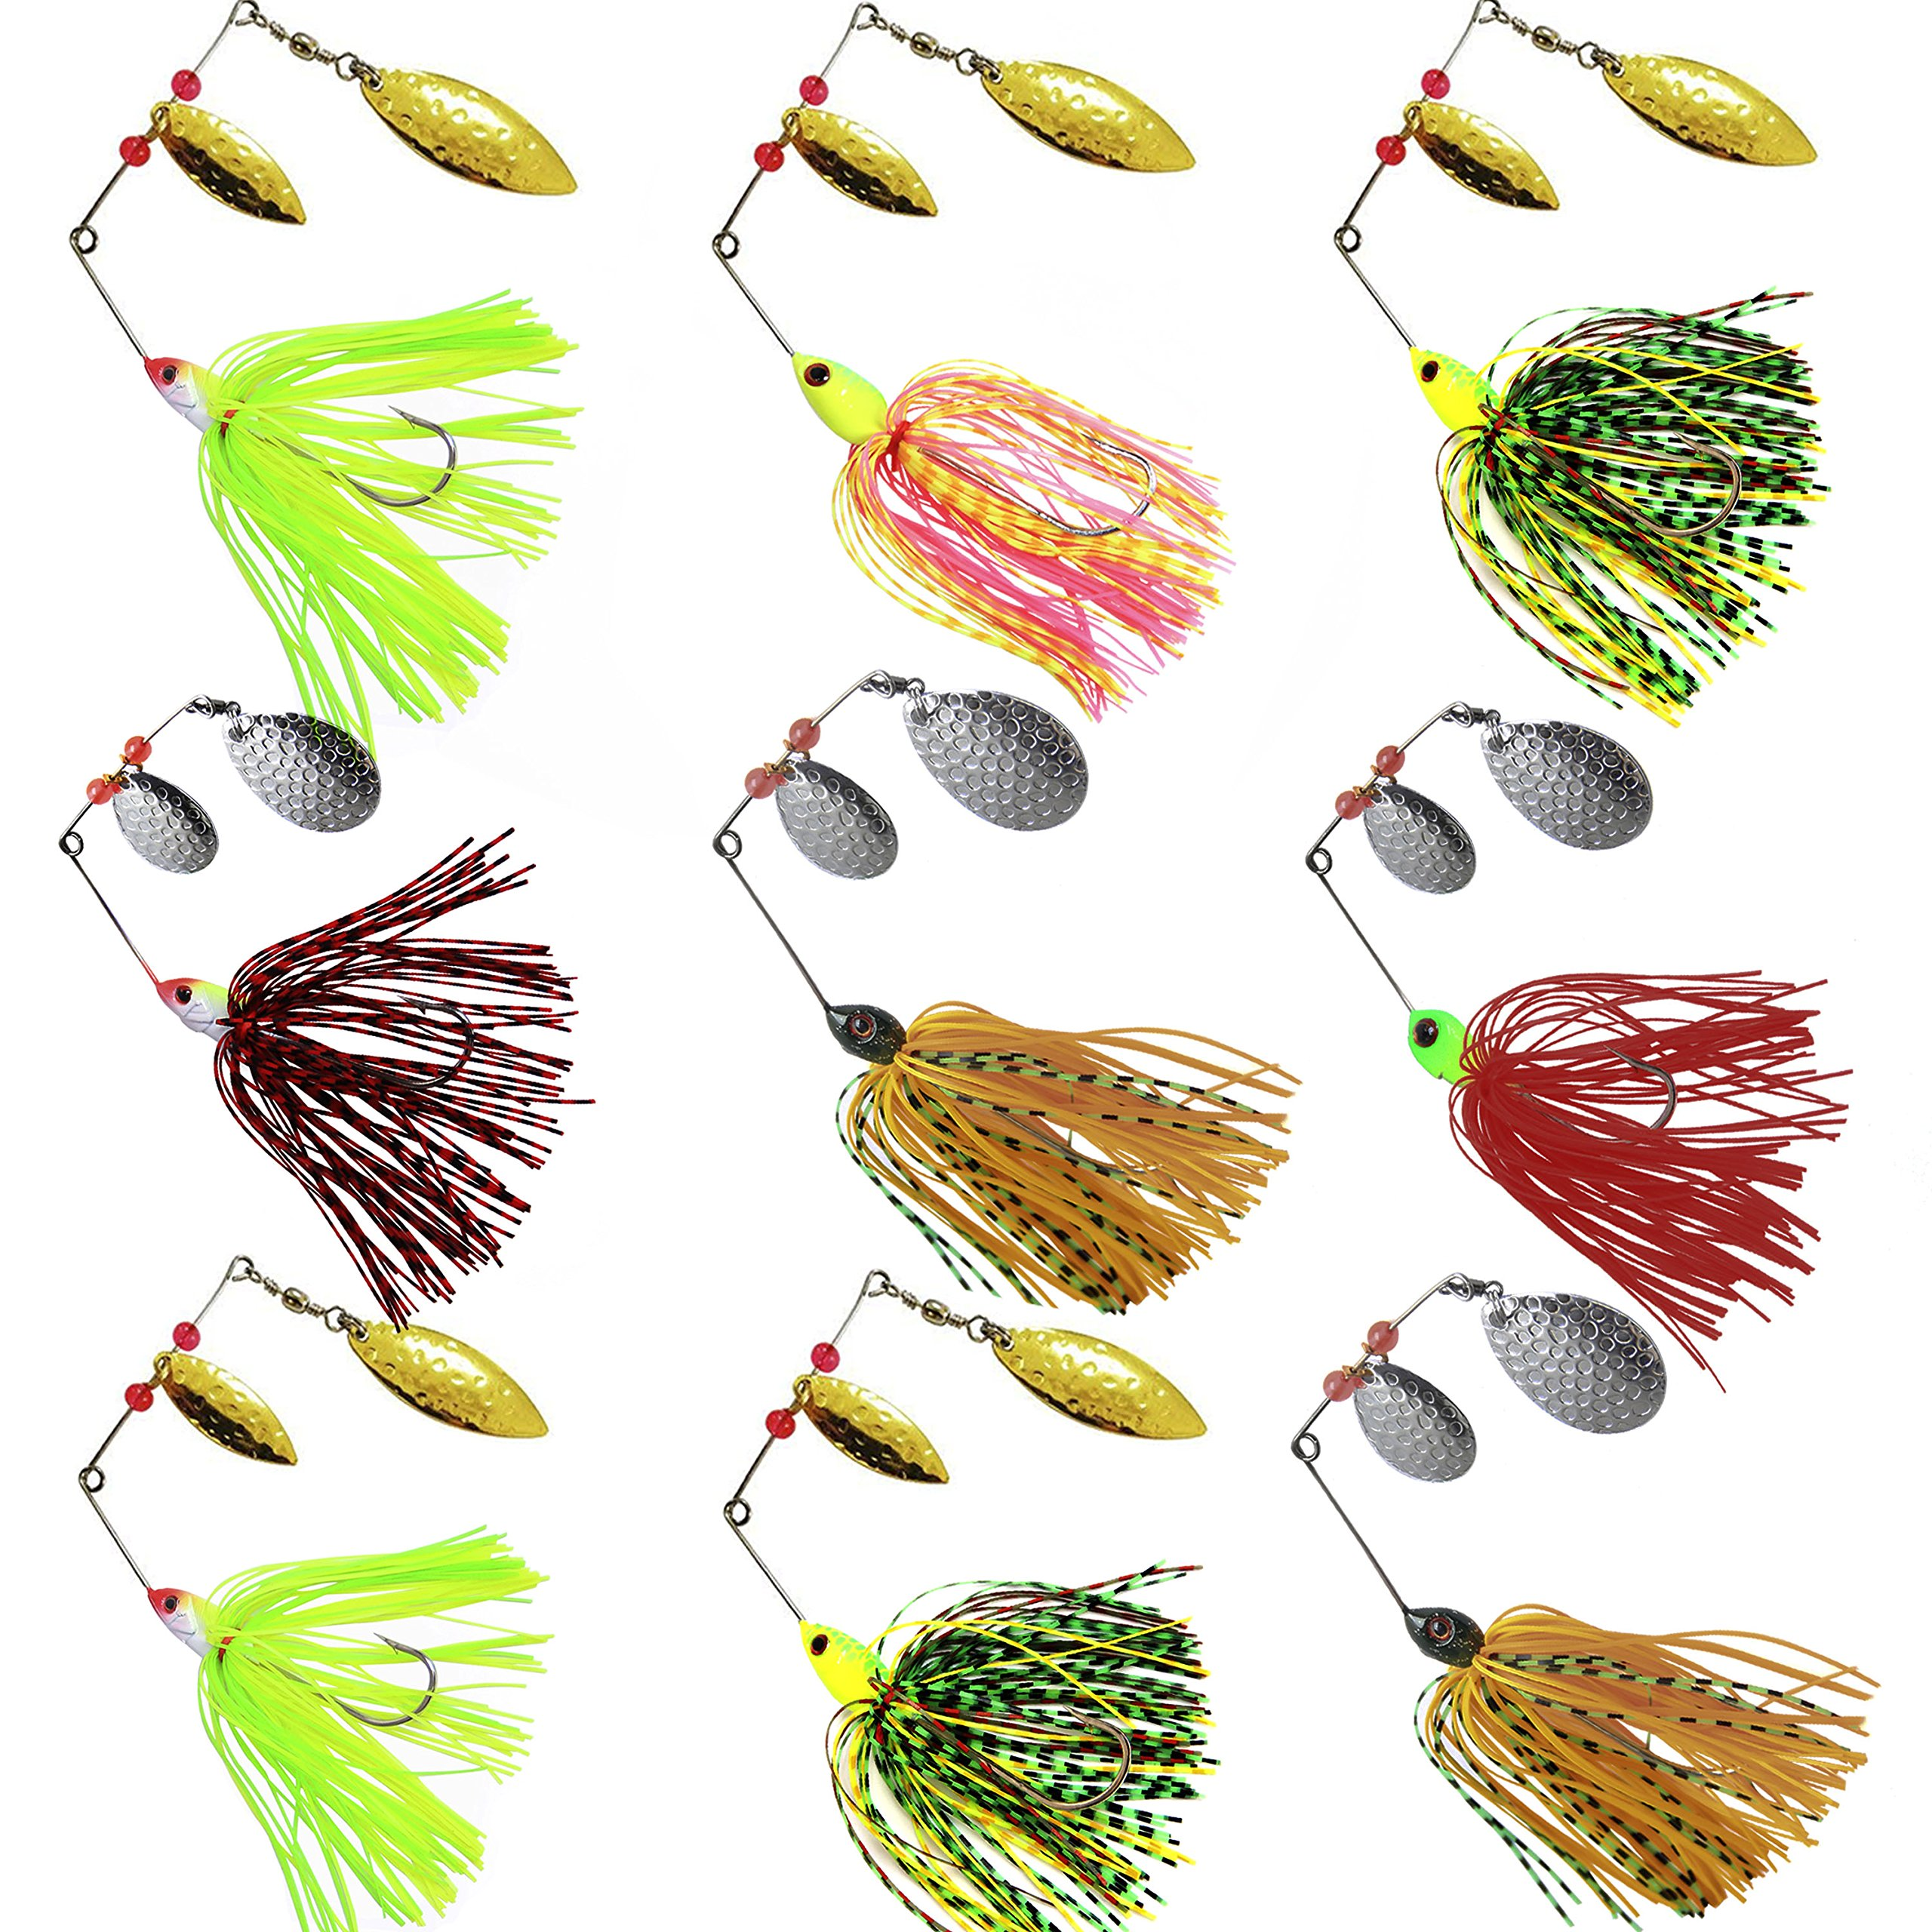 Fishing Spinner Baits Kit Hard Metal Spinnerbait Jig Lure Kit for Bass Pike (9pcs Spinner Baits) by Shaddock Fishing